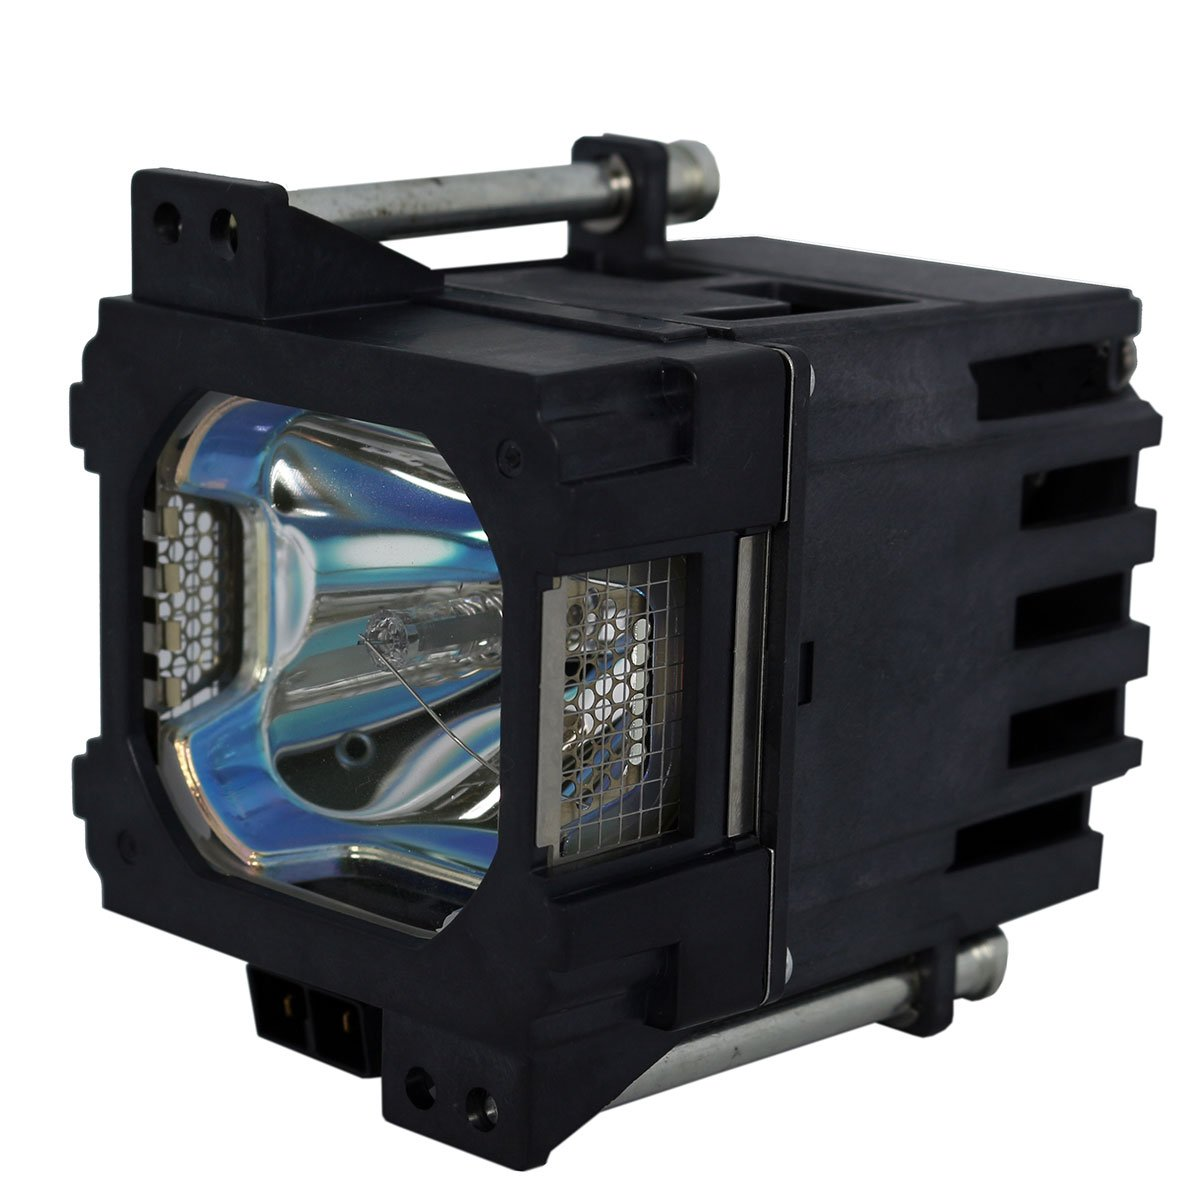 オリジナルフィリップスプロジェクター交換用ランプ JVC DLA-RS1X用 Platinum (Brighter/Durable) Platinum (Brighter/Durable) Lamp with Housing B07L2BZB4B